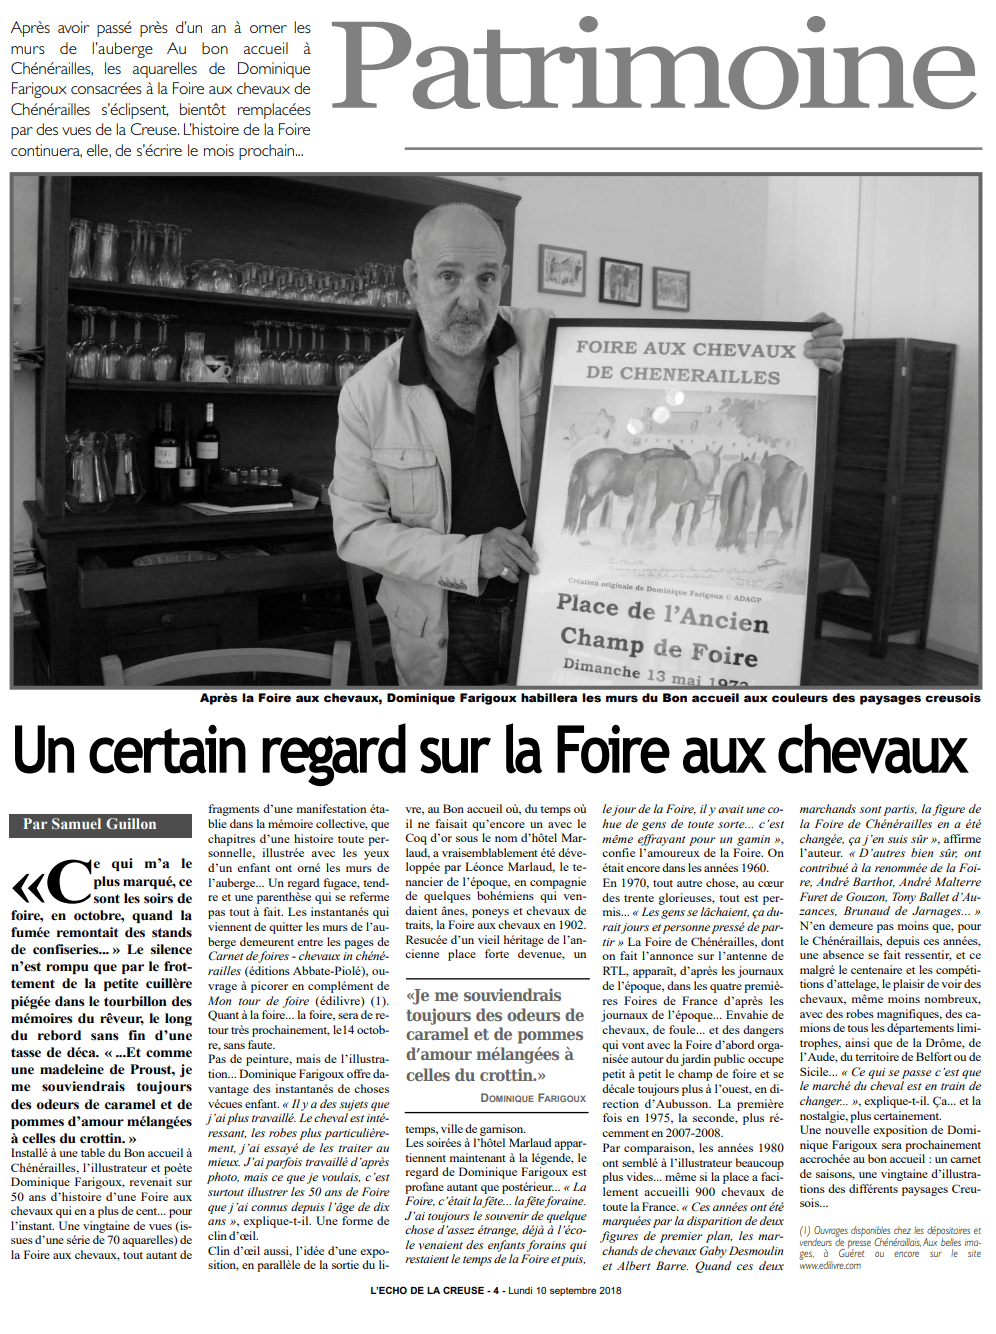 article_L'Echo_Dominique_Farigoux_2018_Edilivre